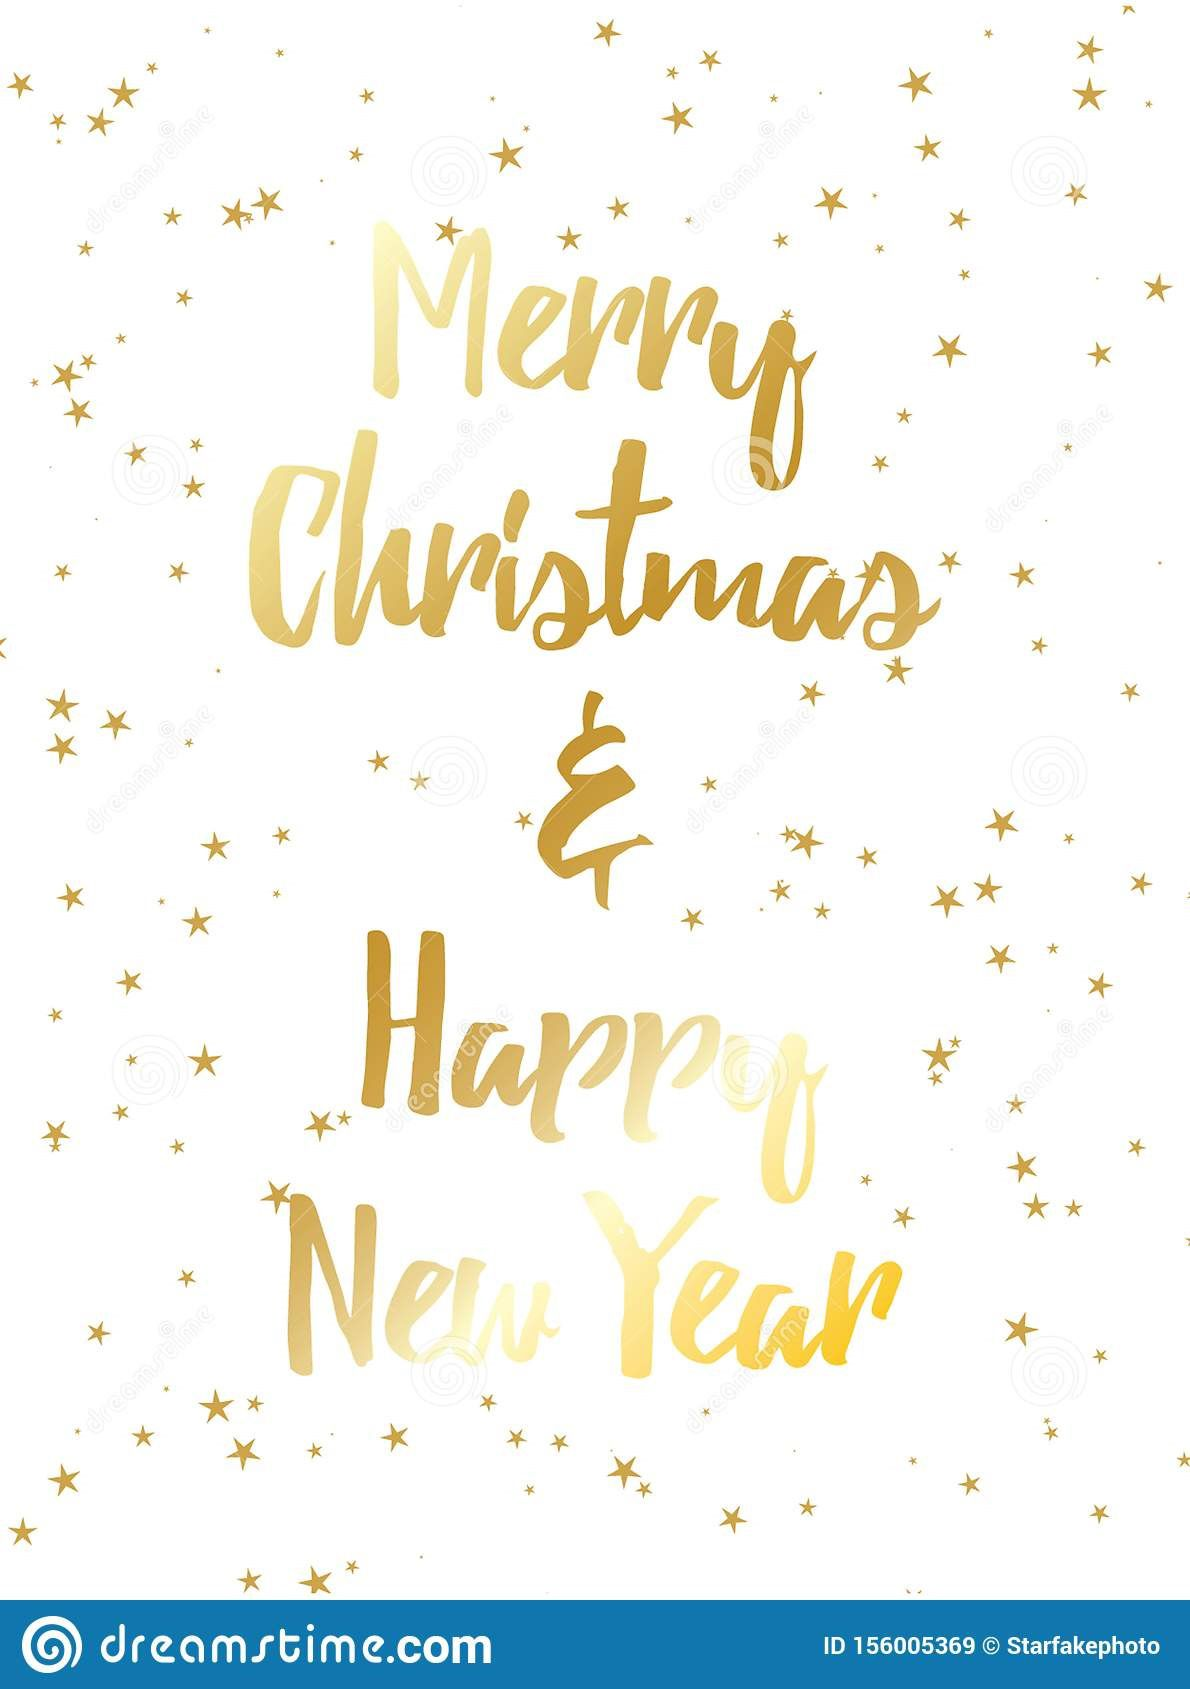 009 Simple New Year Card Template Image  Happy Chinese 2020 FreeFull